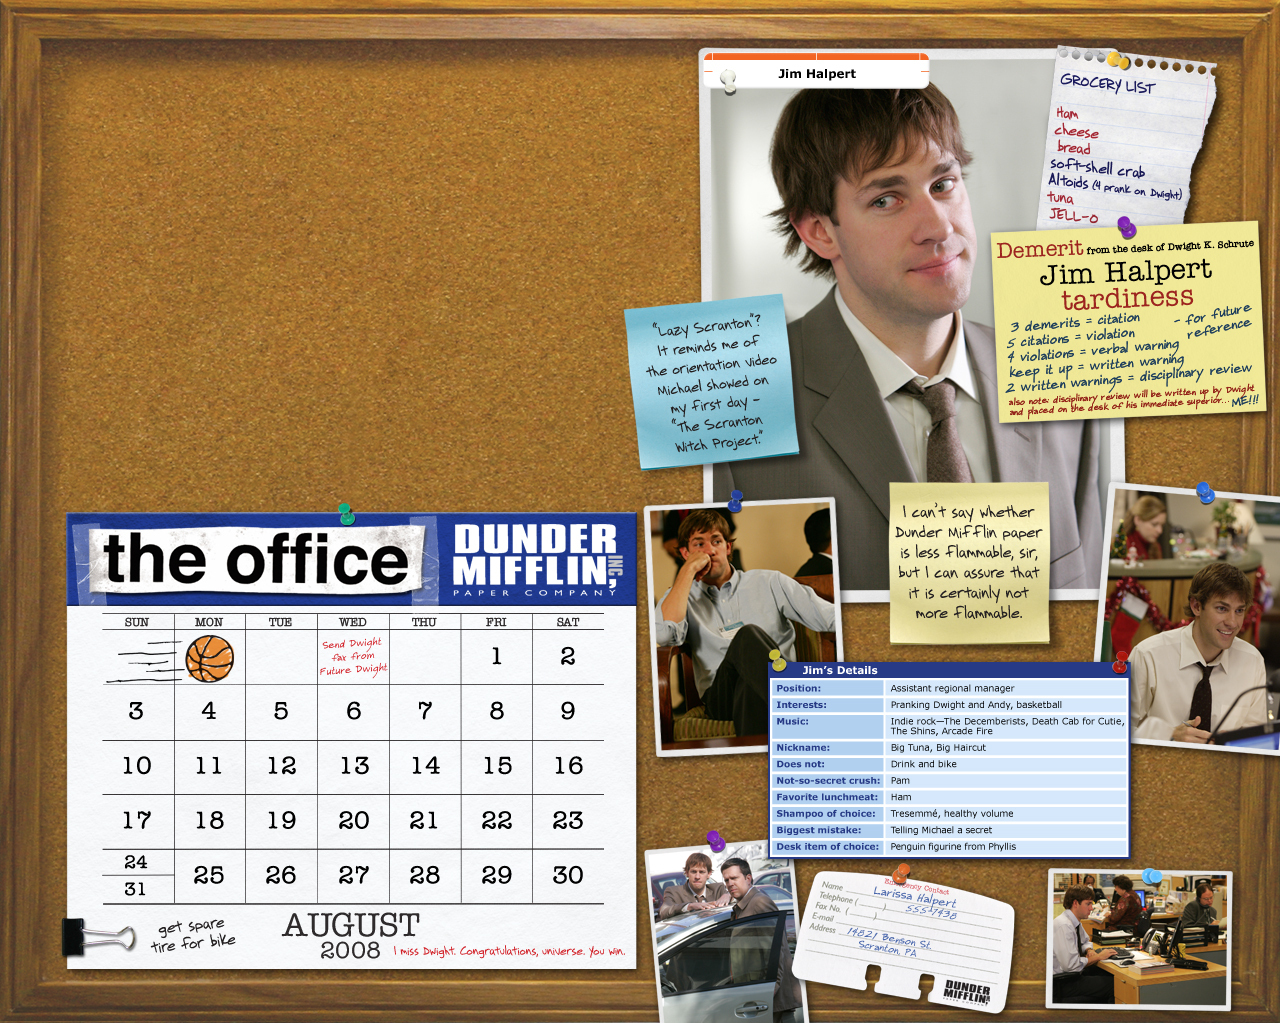 48 The Office Quotes Wallpaper On Wallpapersafari